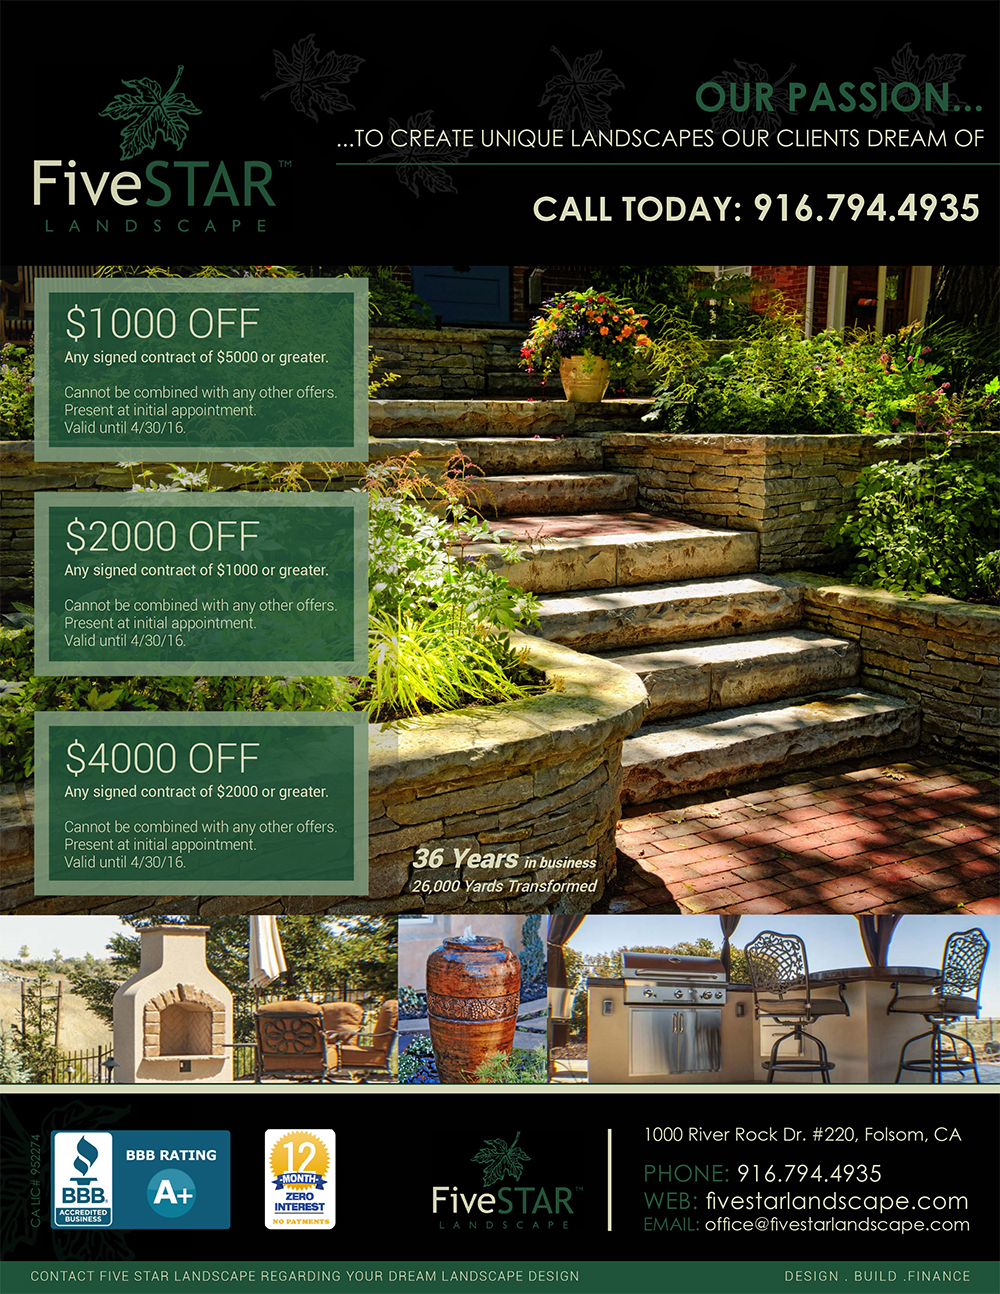 FiveSTAR Landscape Design Magazine Ad - Graphic Design